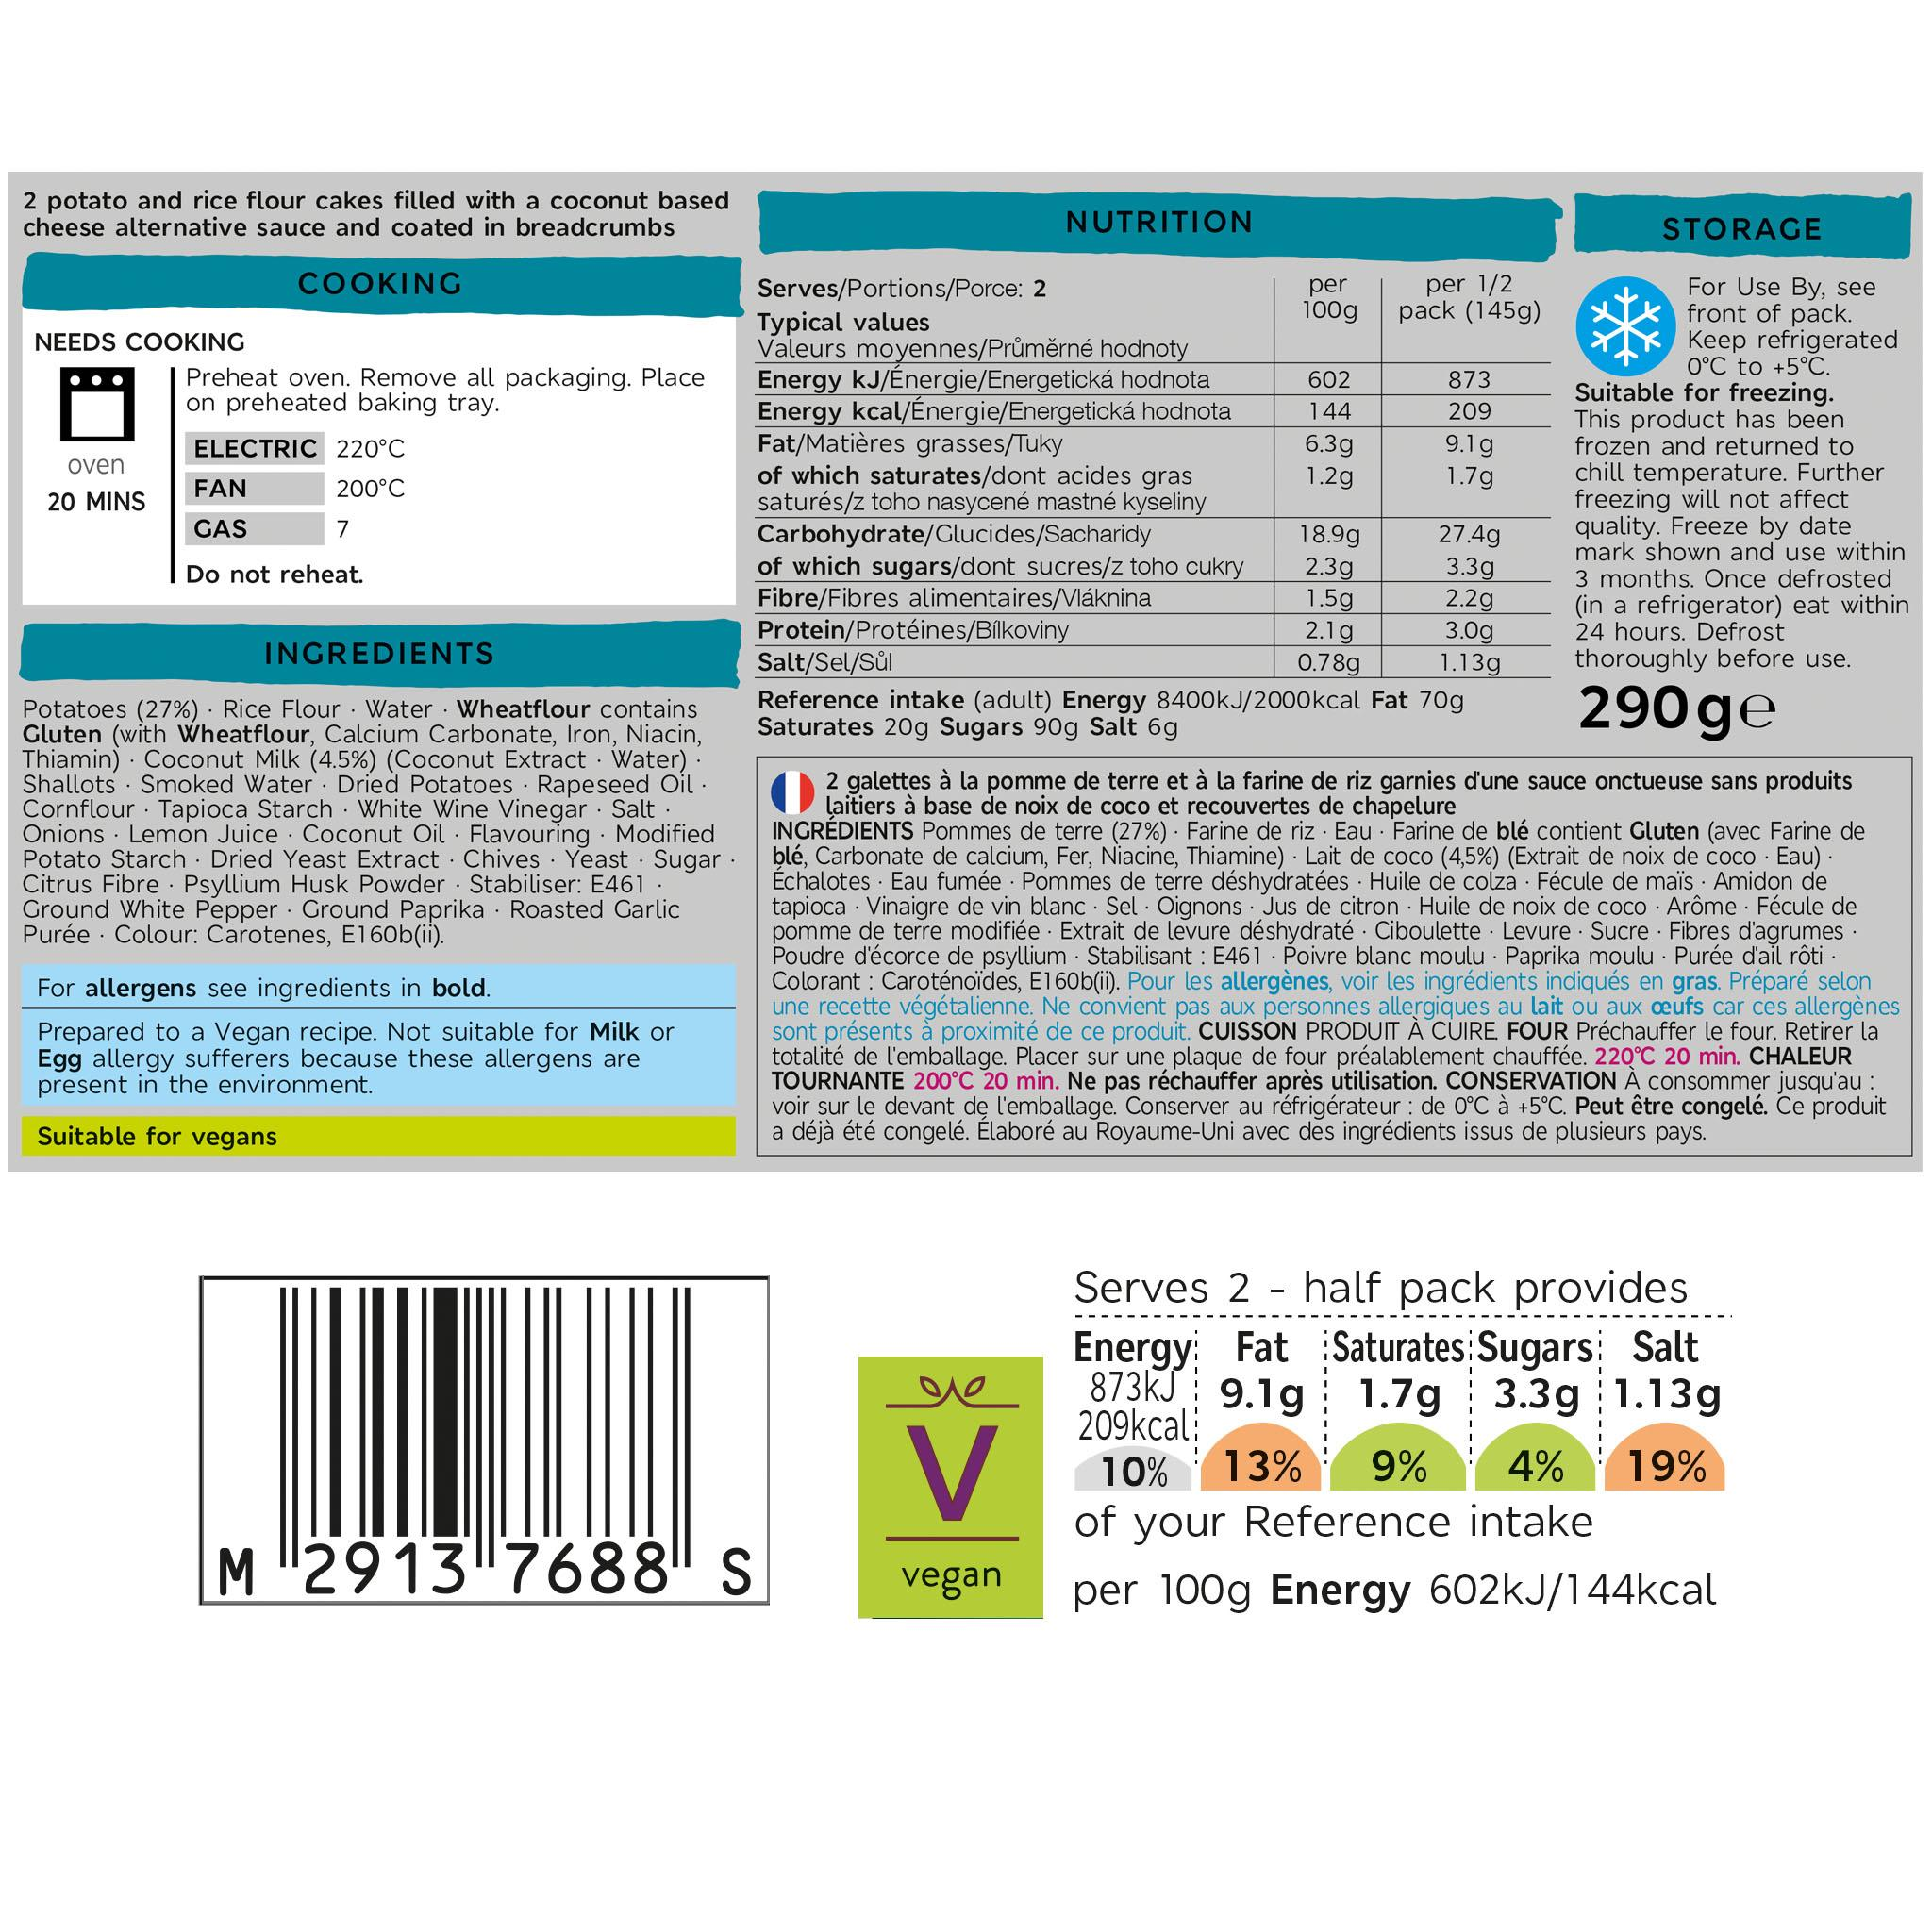 Plant Kitchen 2 Melt in the Middle No Fish Cakes 290g Label